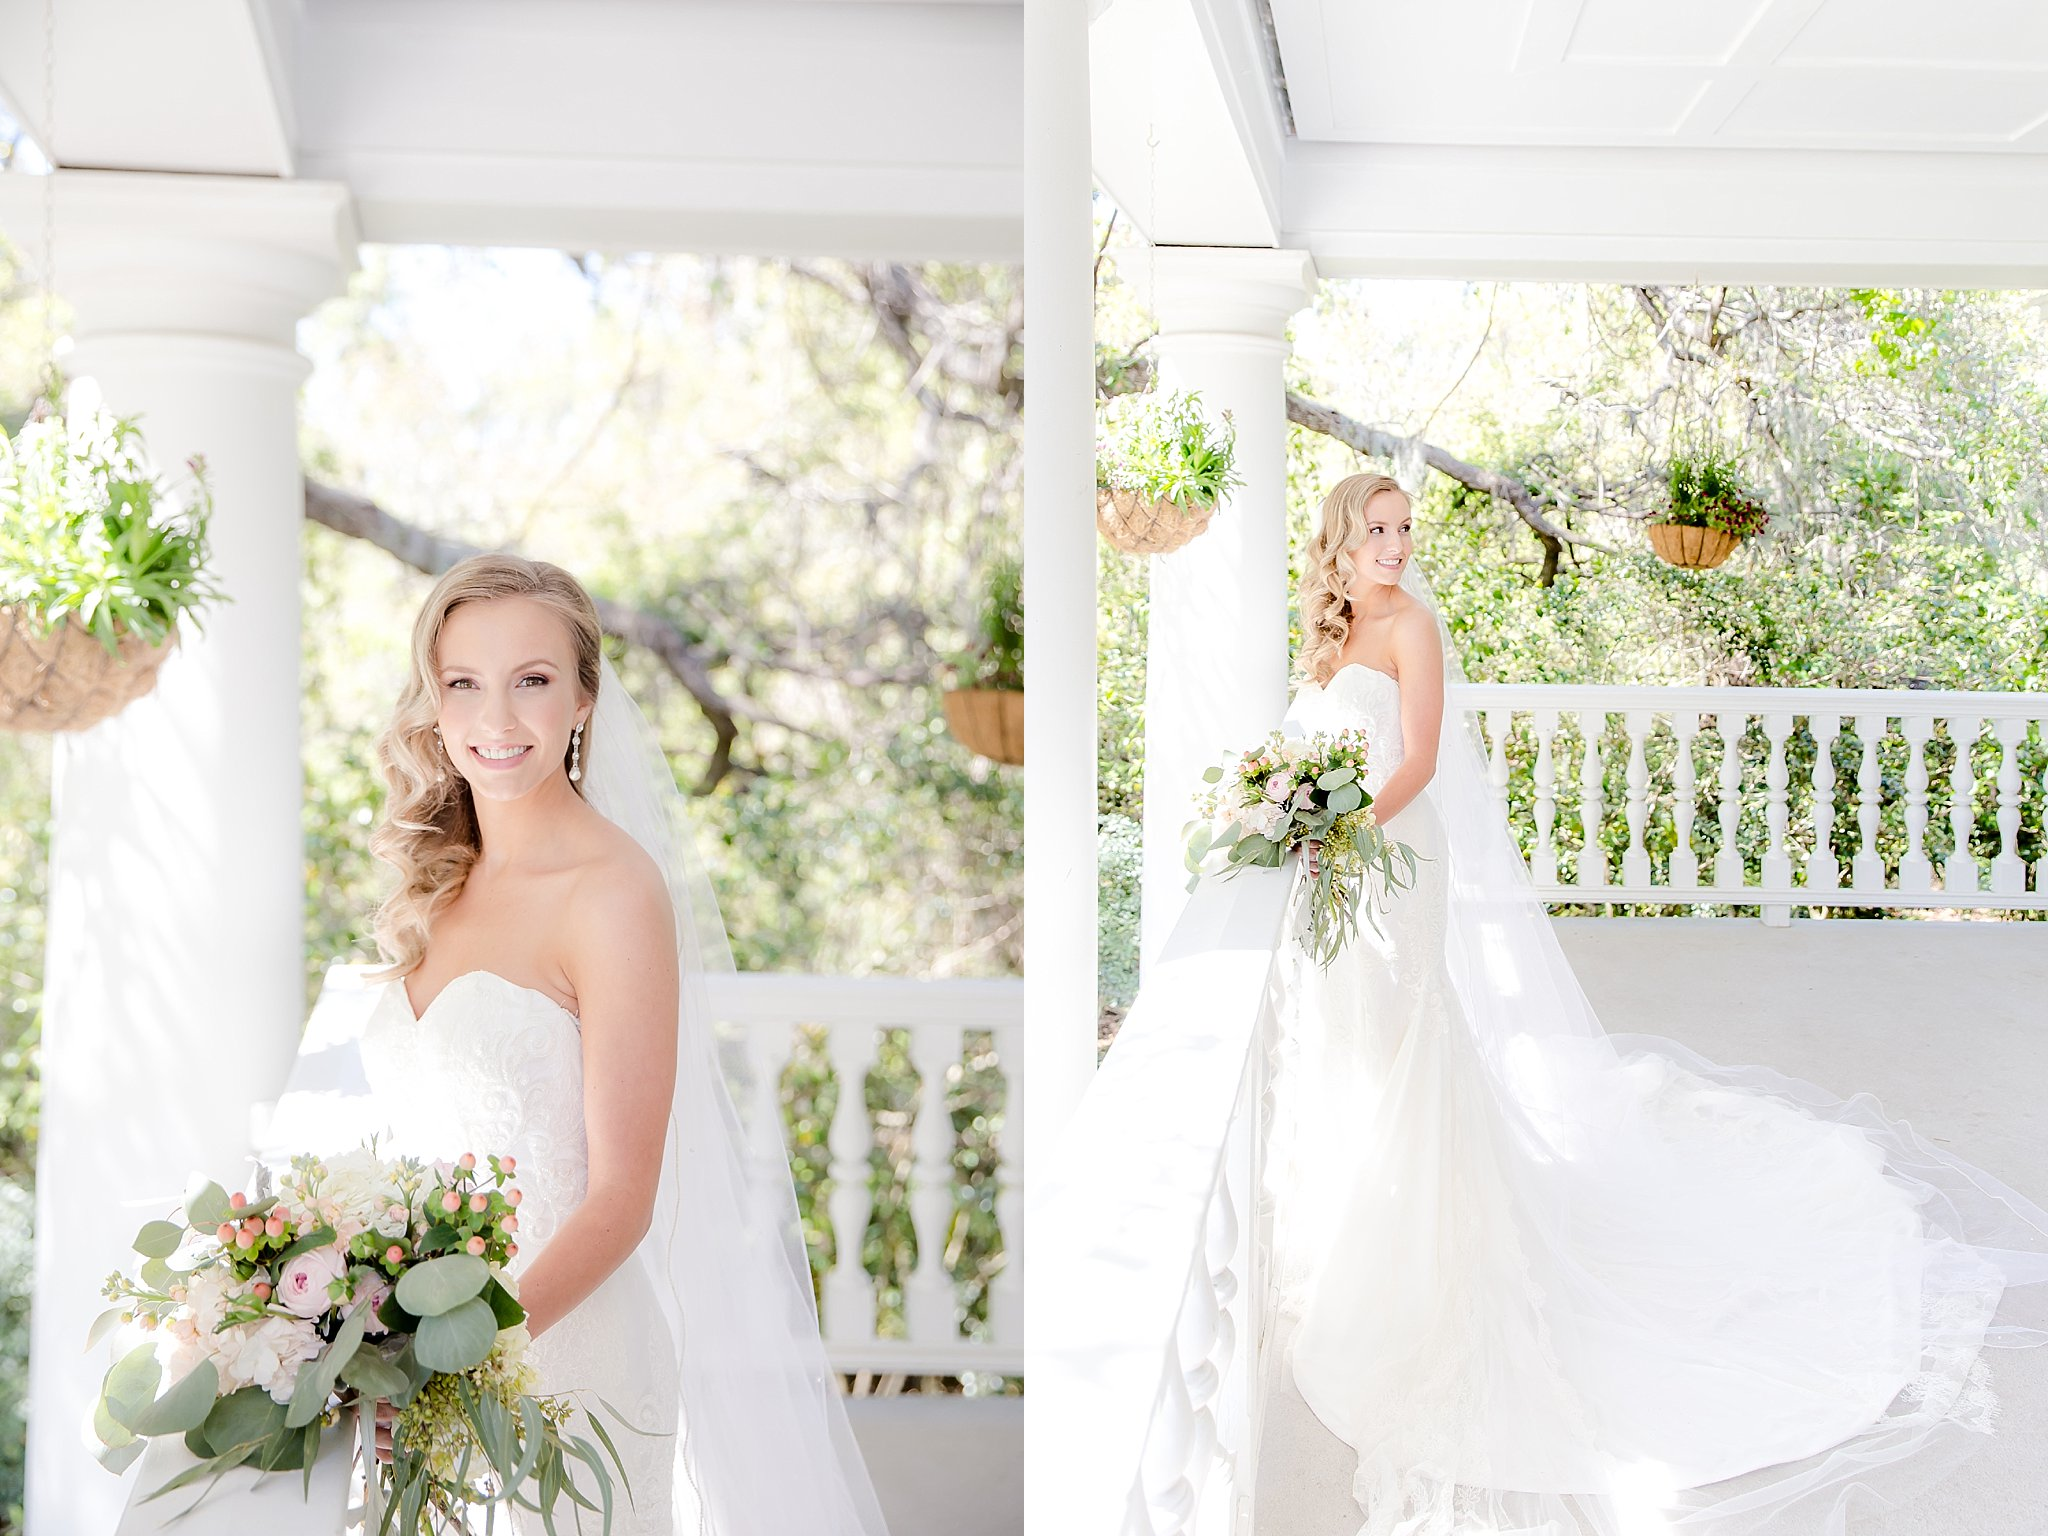 Photography:  Adrienne Cooper Photography  | Venue:  Magnolia Plantation  | Wedding Dress:Kelly Faetanini from  The Bridal House of Charleston  | Hair + Makeup:  BlushAir Bridal Hair and Makeup  |Bouquet: Stephanie Dickerson